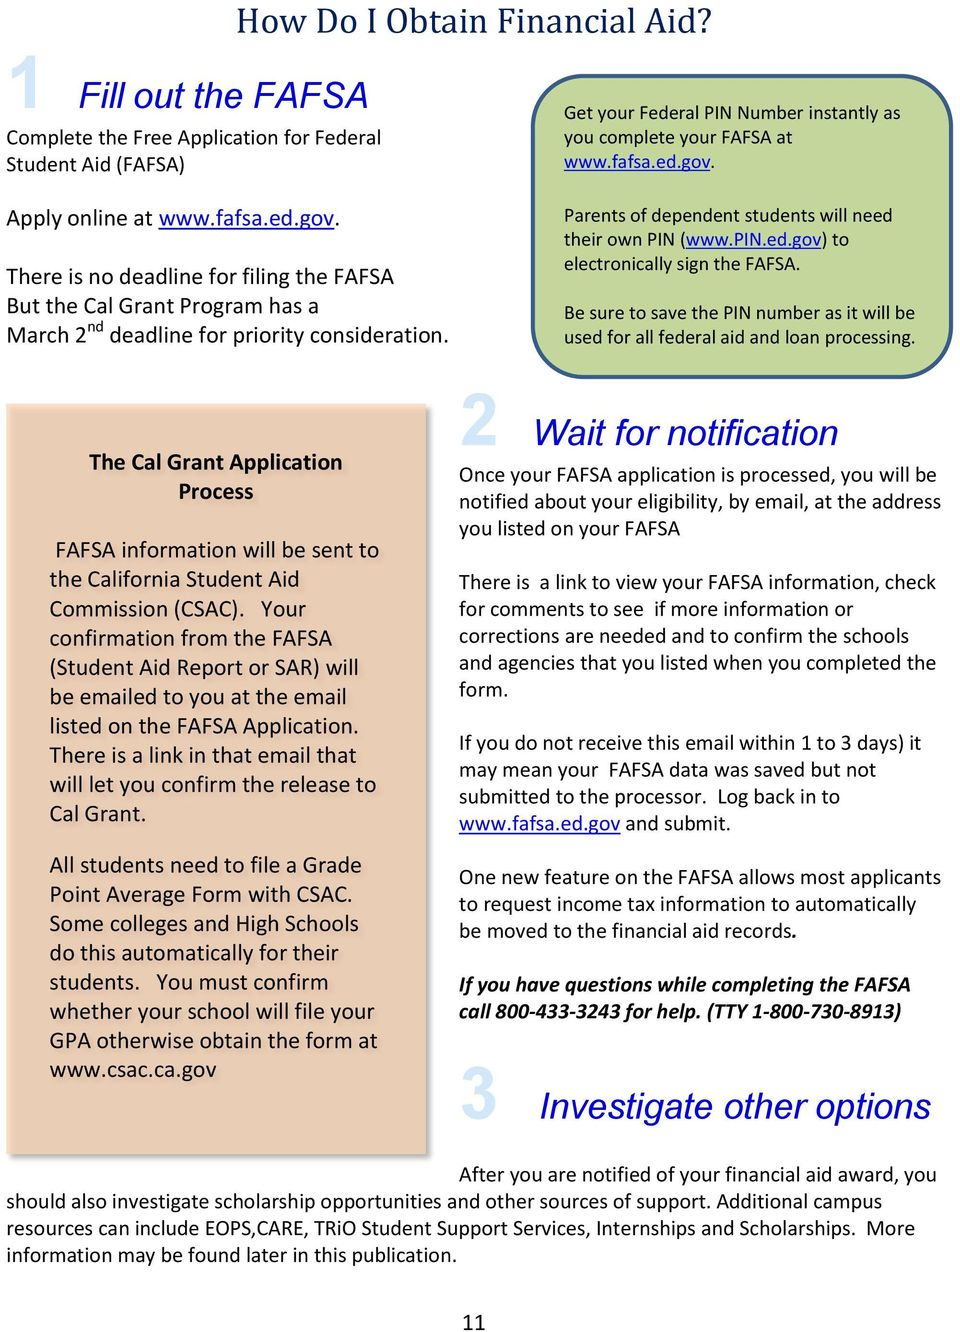 ed.gov. Parents of dependent students will need their own PIN (www.pin.ed.gov) to electronically sign the FAFSA.